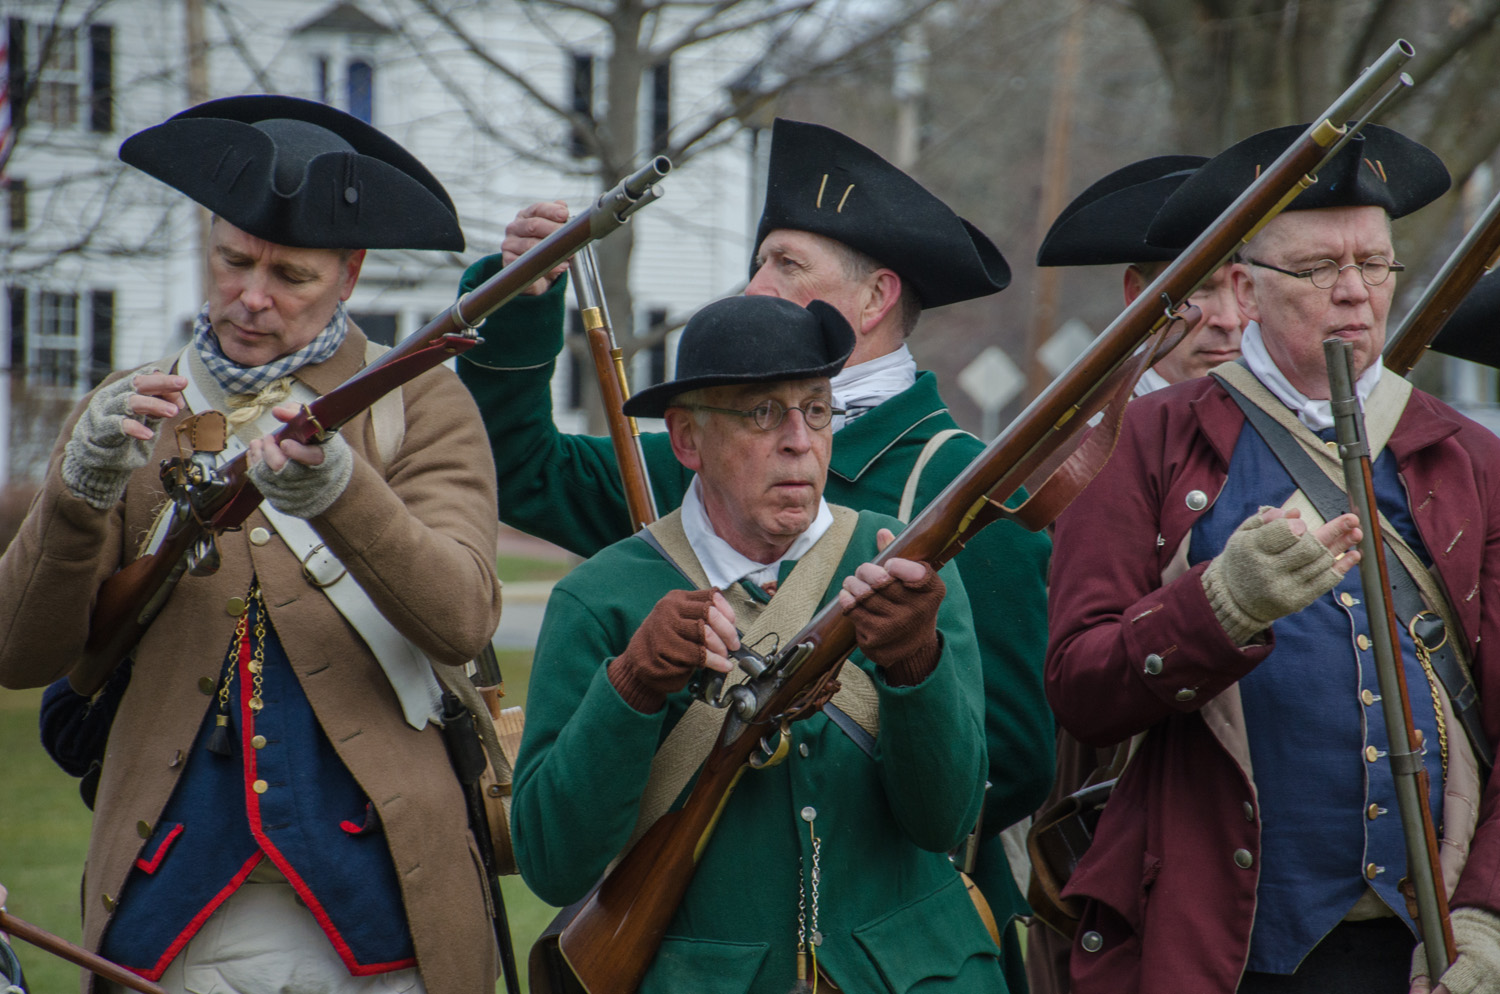 Musket safety is a major focus of the Minute Men's drills. (Sharon Brody/WBUR)